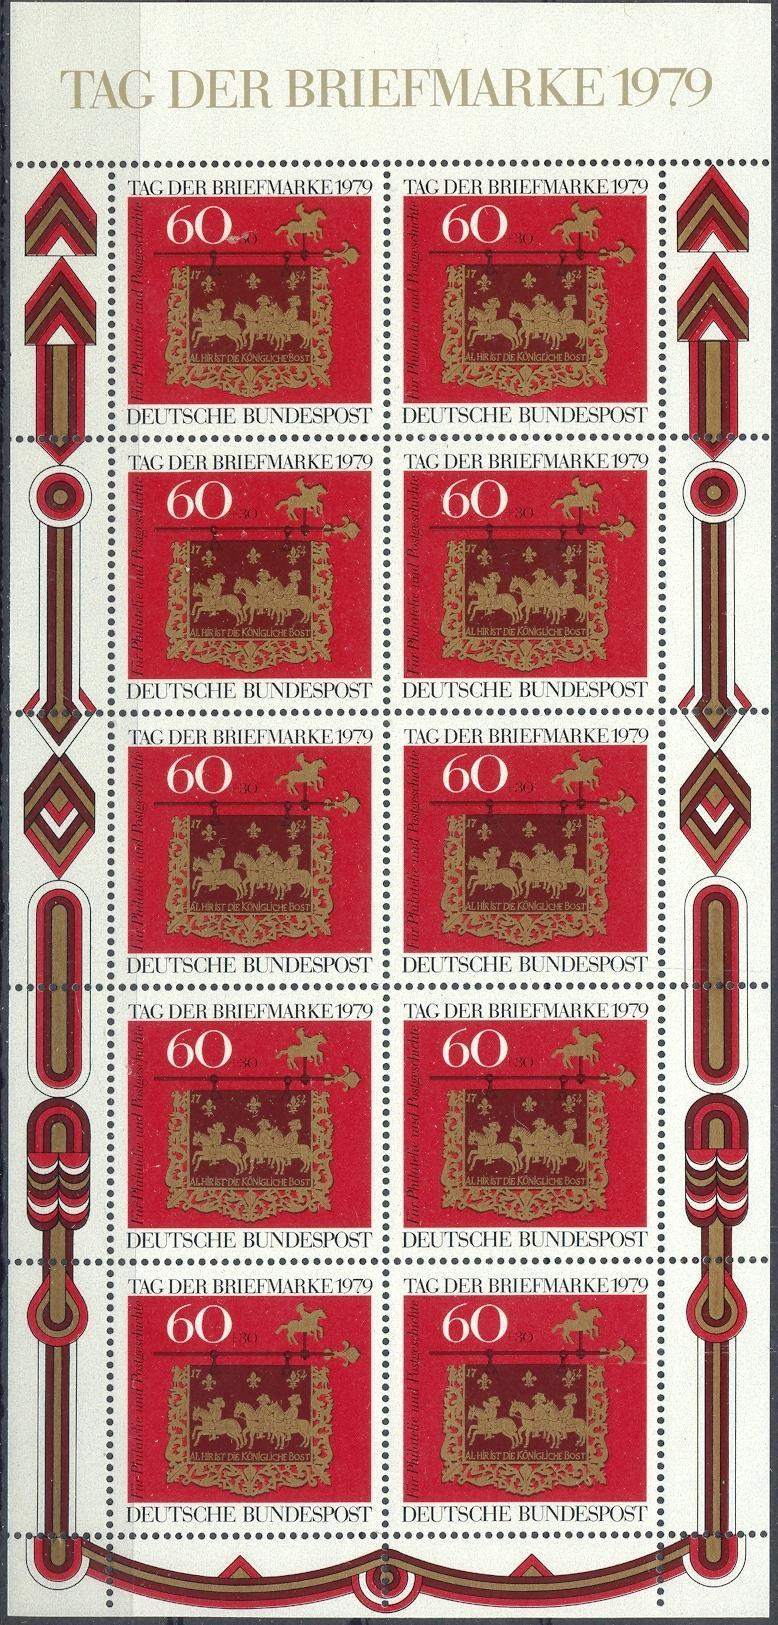 Stamps with Coat of Arms from Germany (image for product #031805)